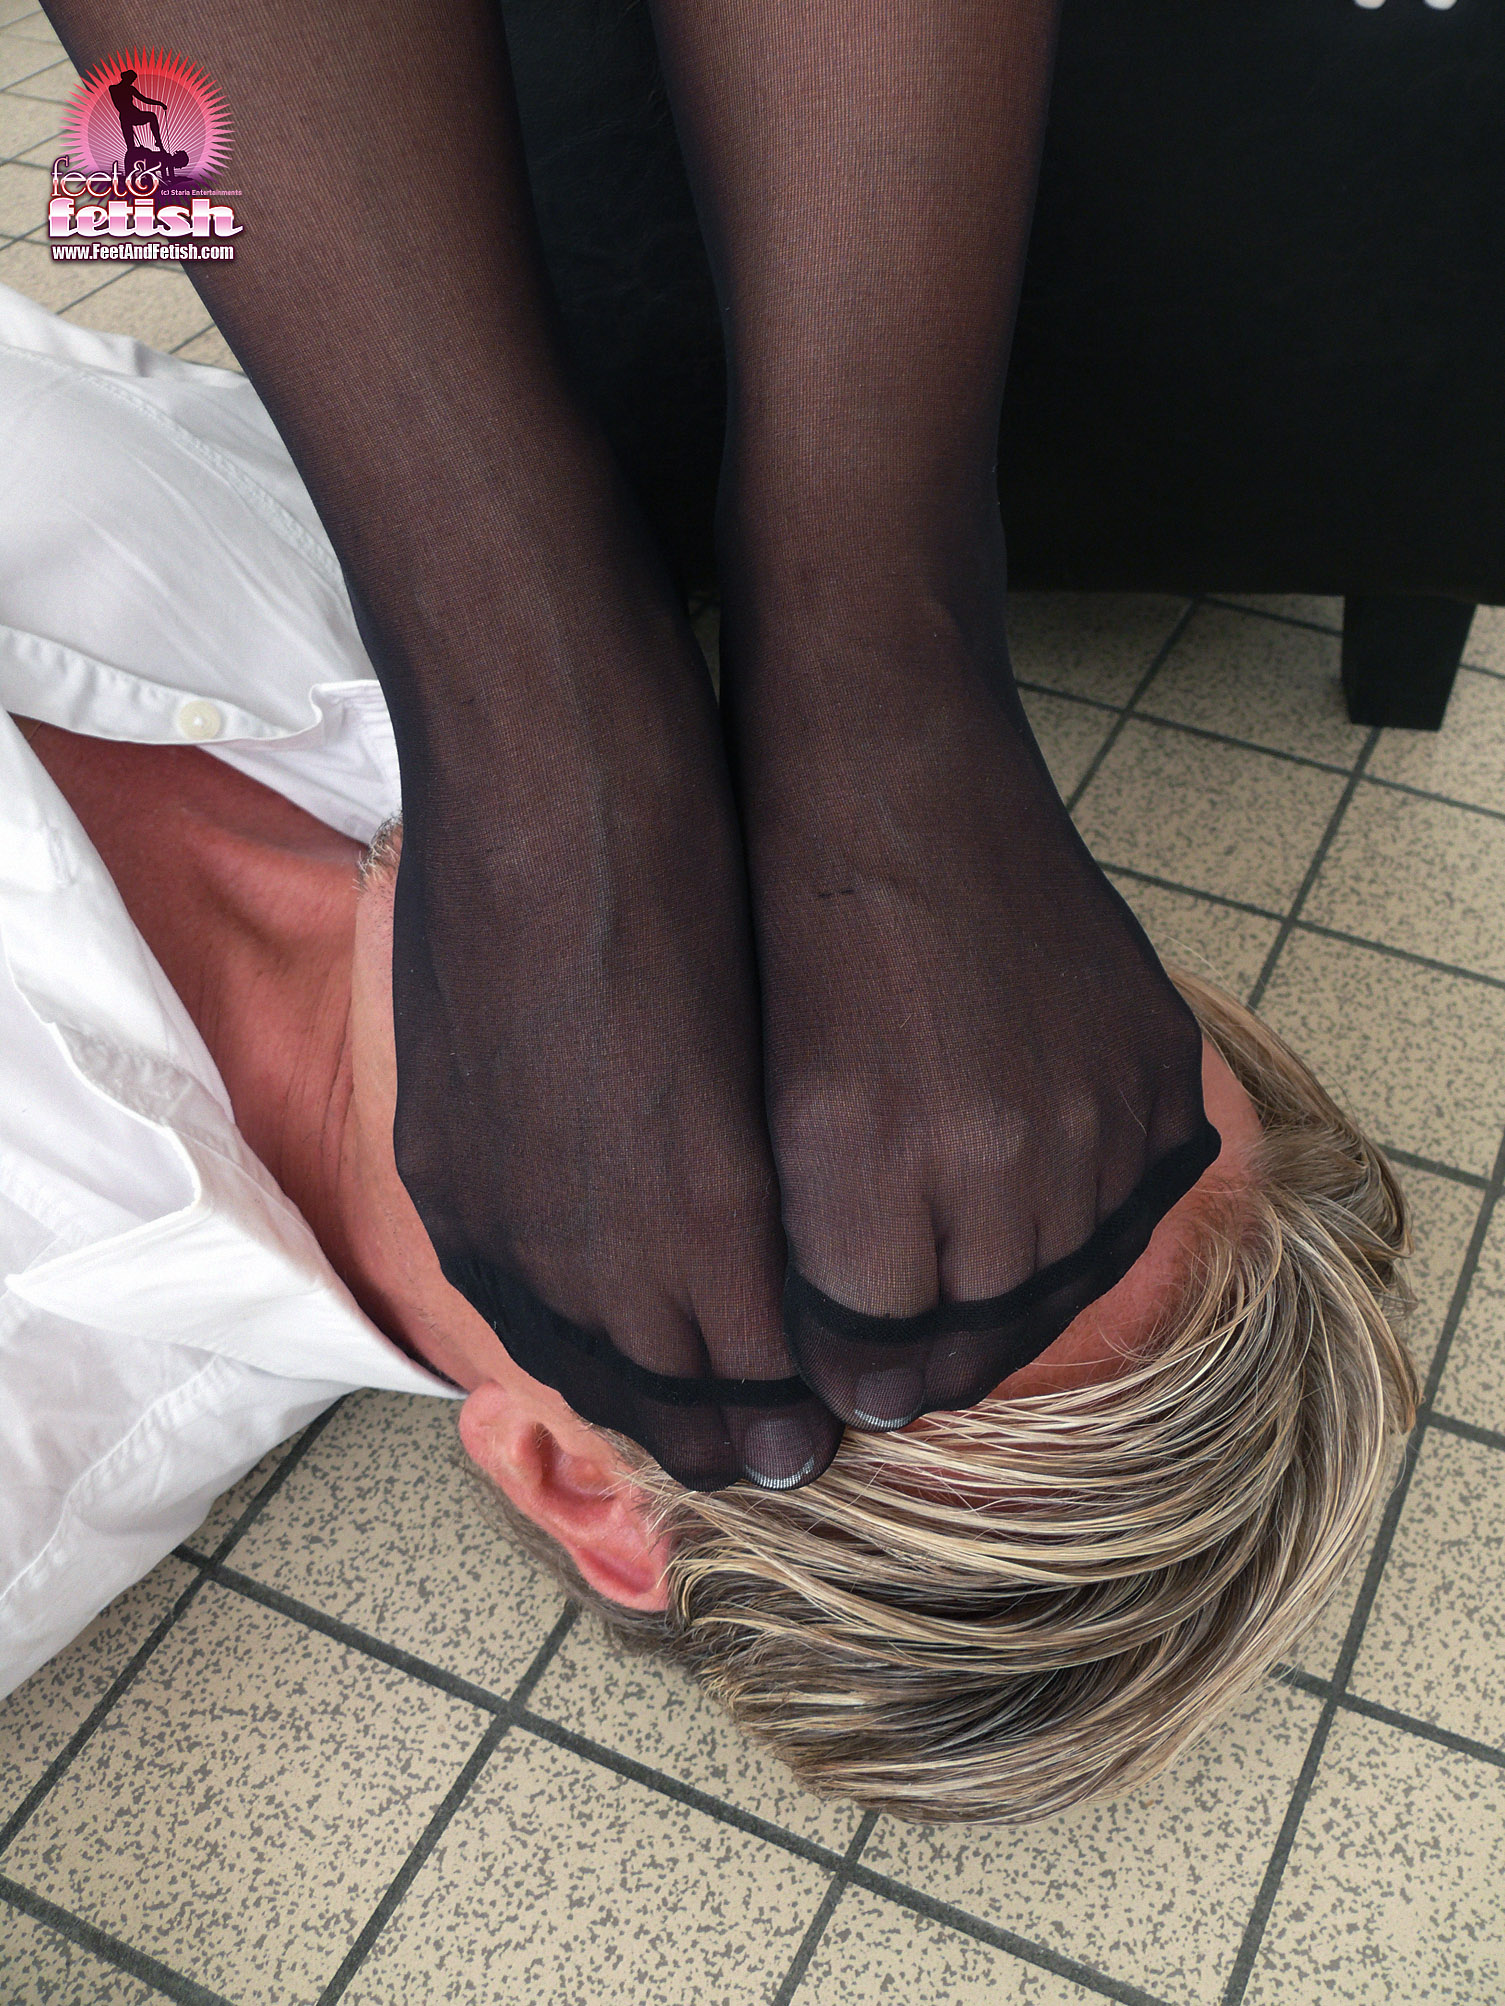 Feet worship mistress nicole in flipflops